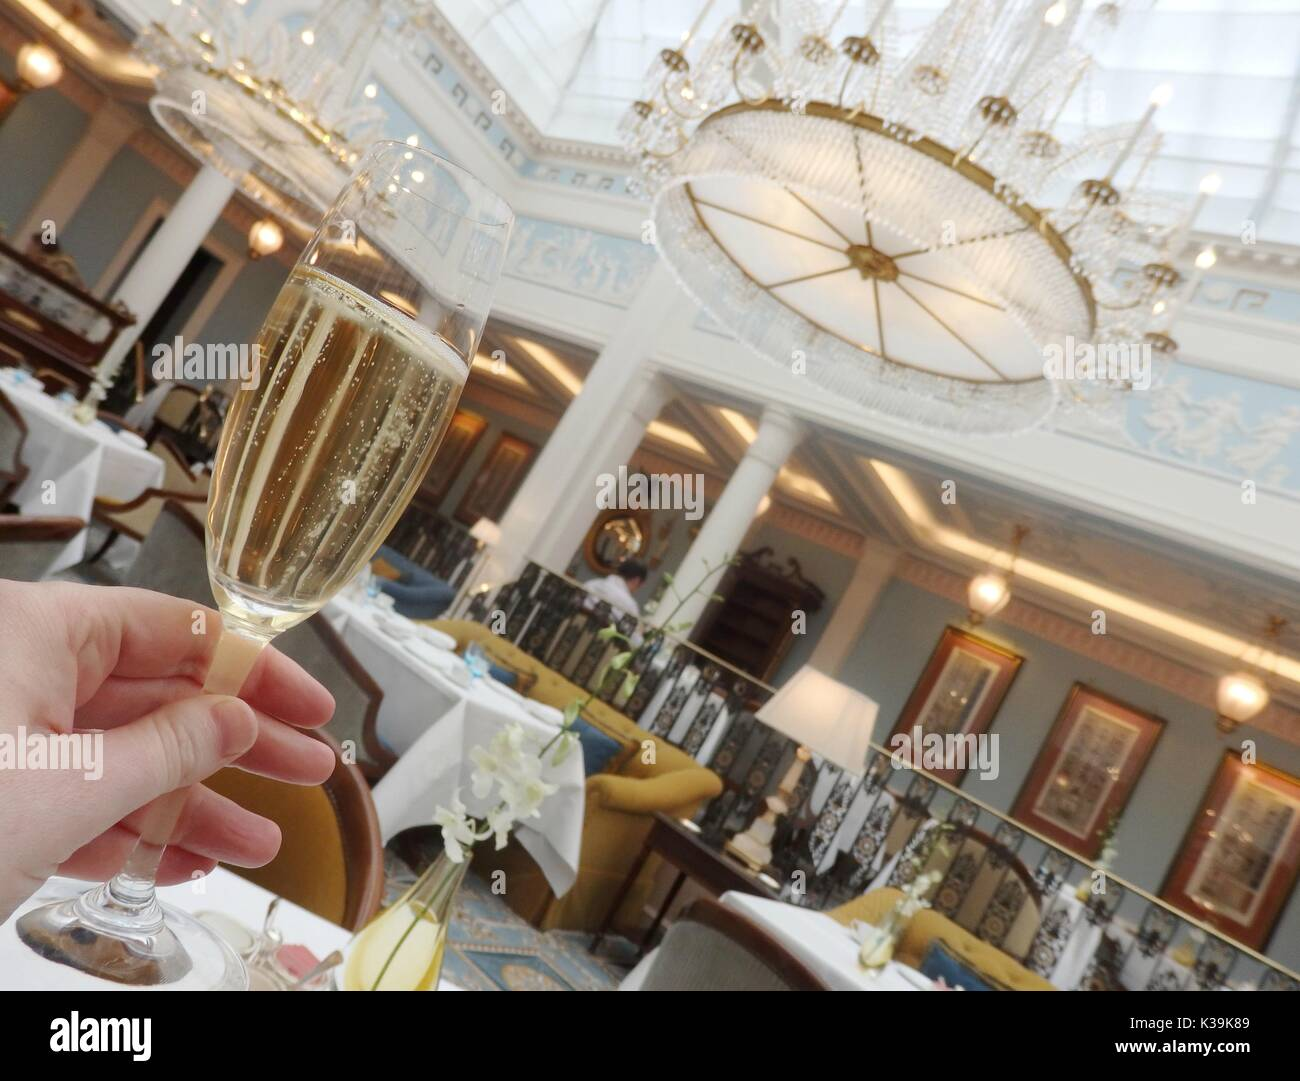 Afternoon Tea at The Lanesborough in Park Lane, London, England Stock Photo